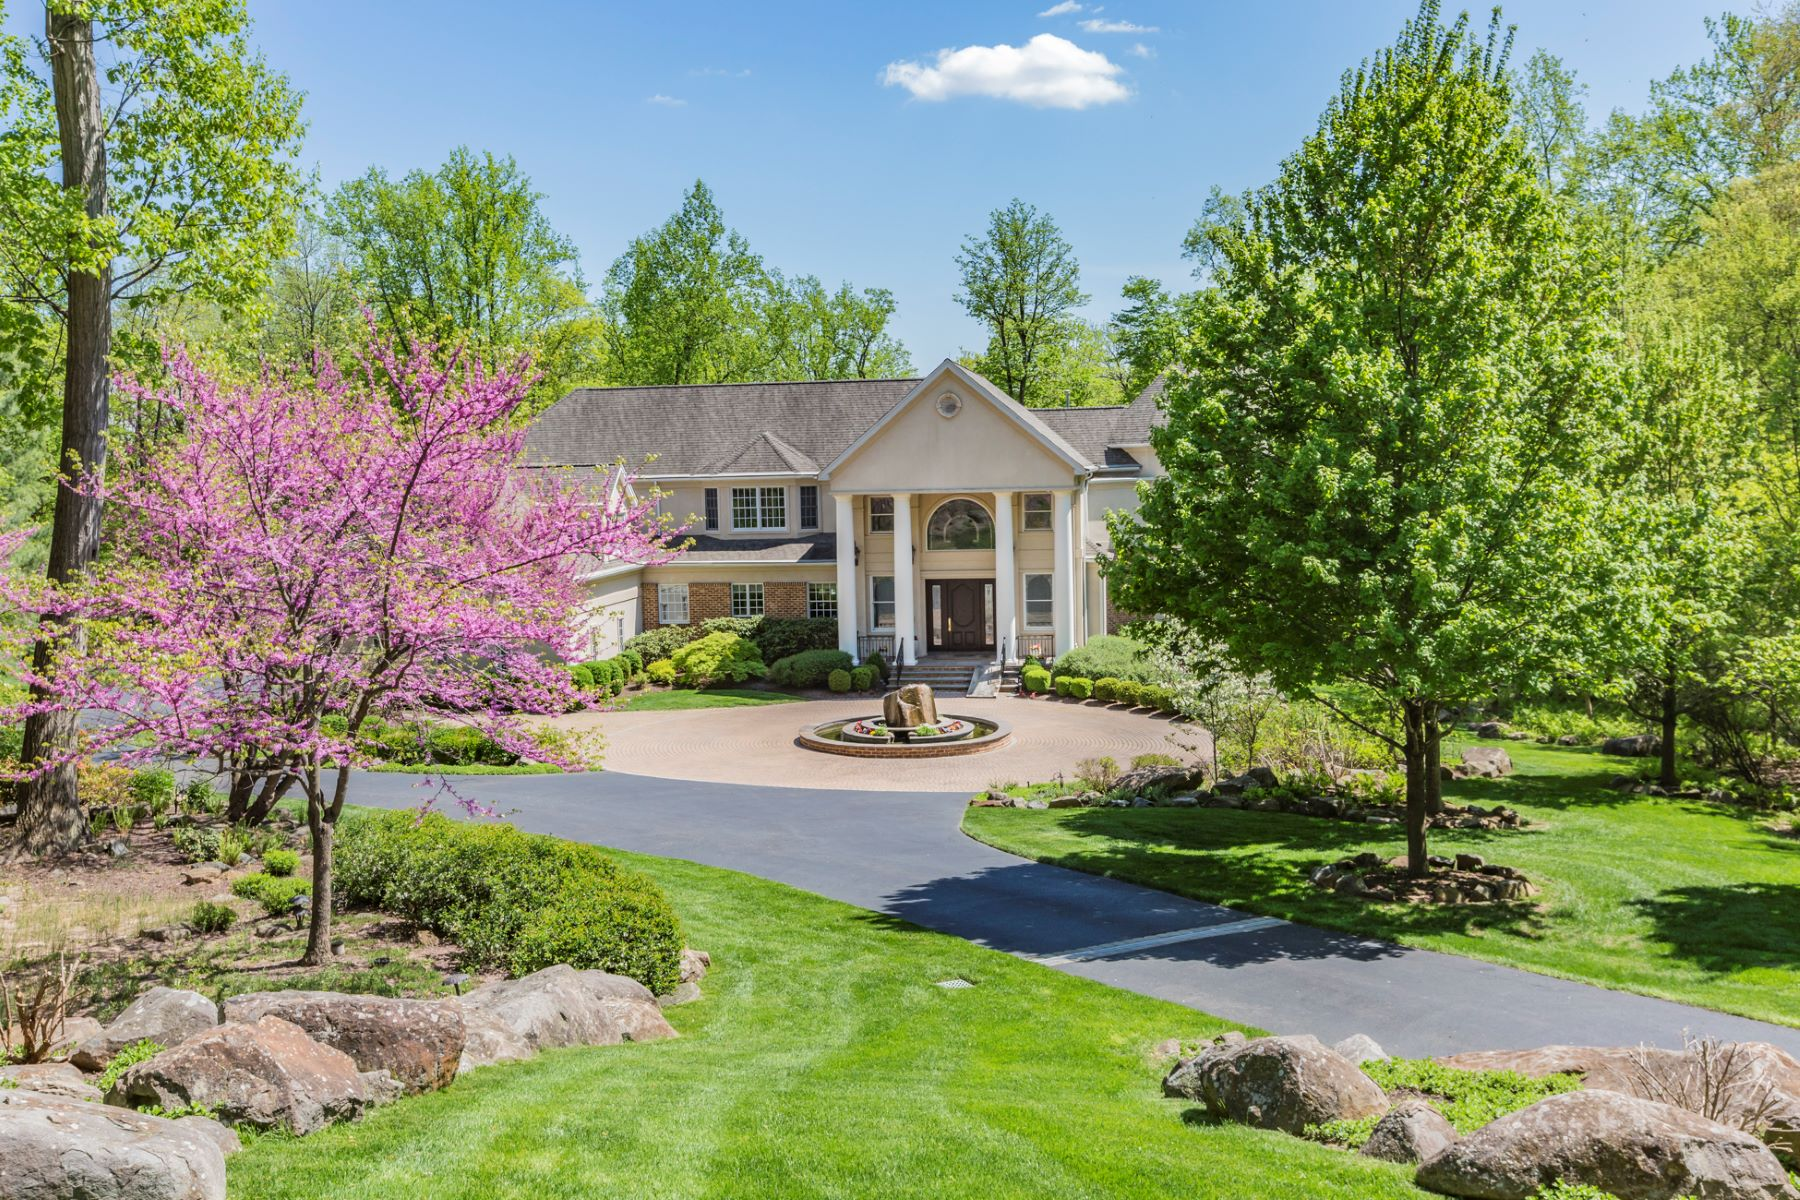 Single Family Home for Sale at Spectacular Estate Is an Entertainer's Paradise 19 Hageman Lane, Princeton, New Jersey 08540 United StatesMunicipality: Princeton